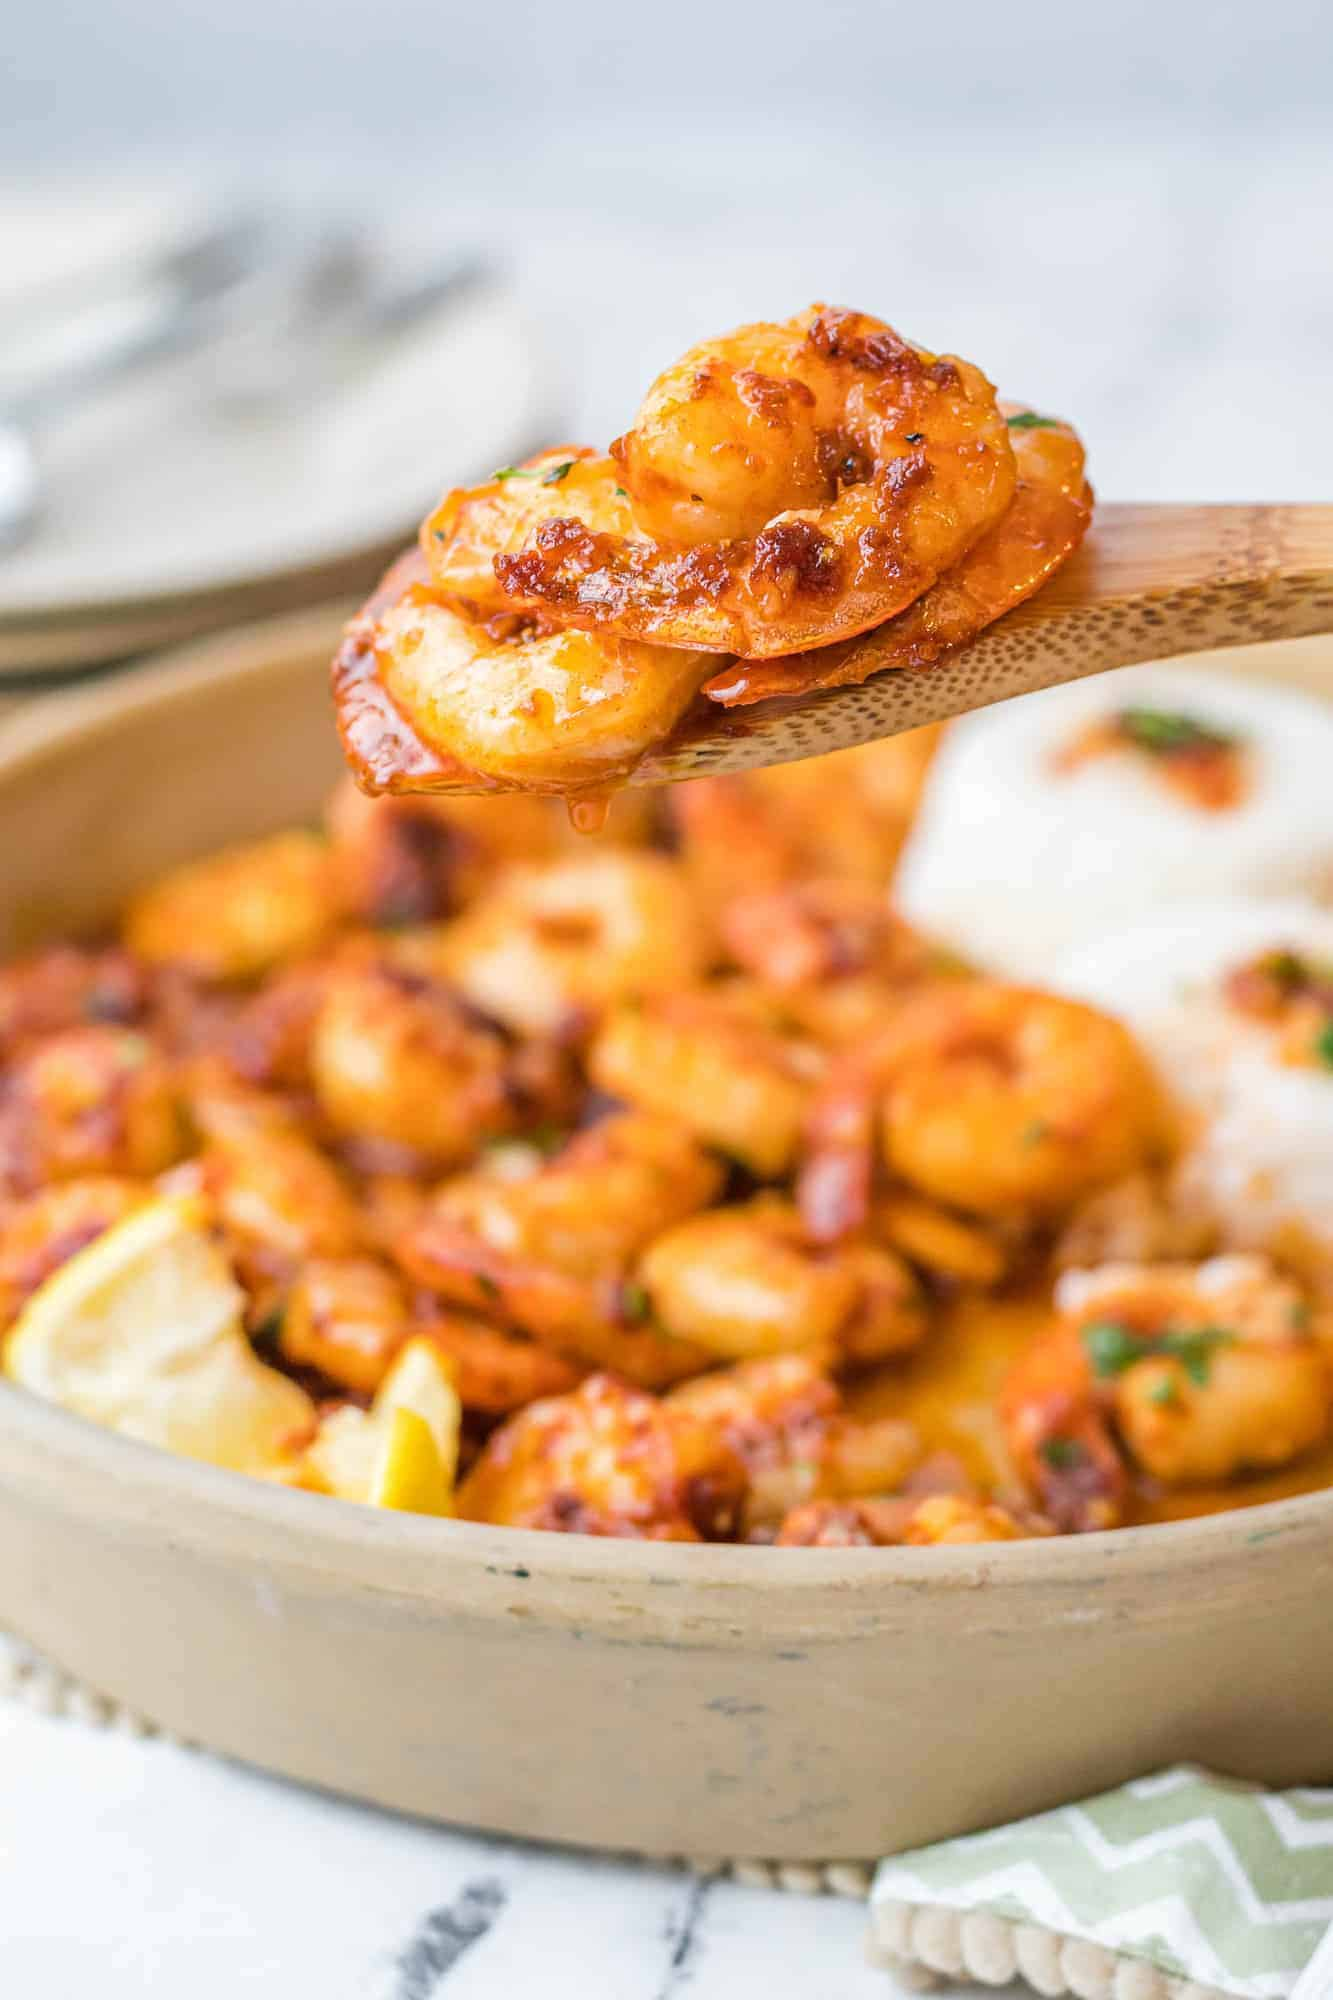 Seasoned and cooked shrimp on a serving spoon, more in the background.